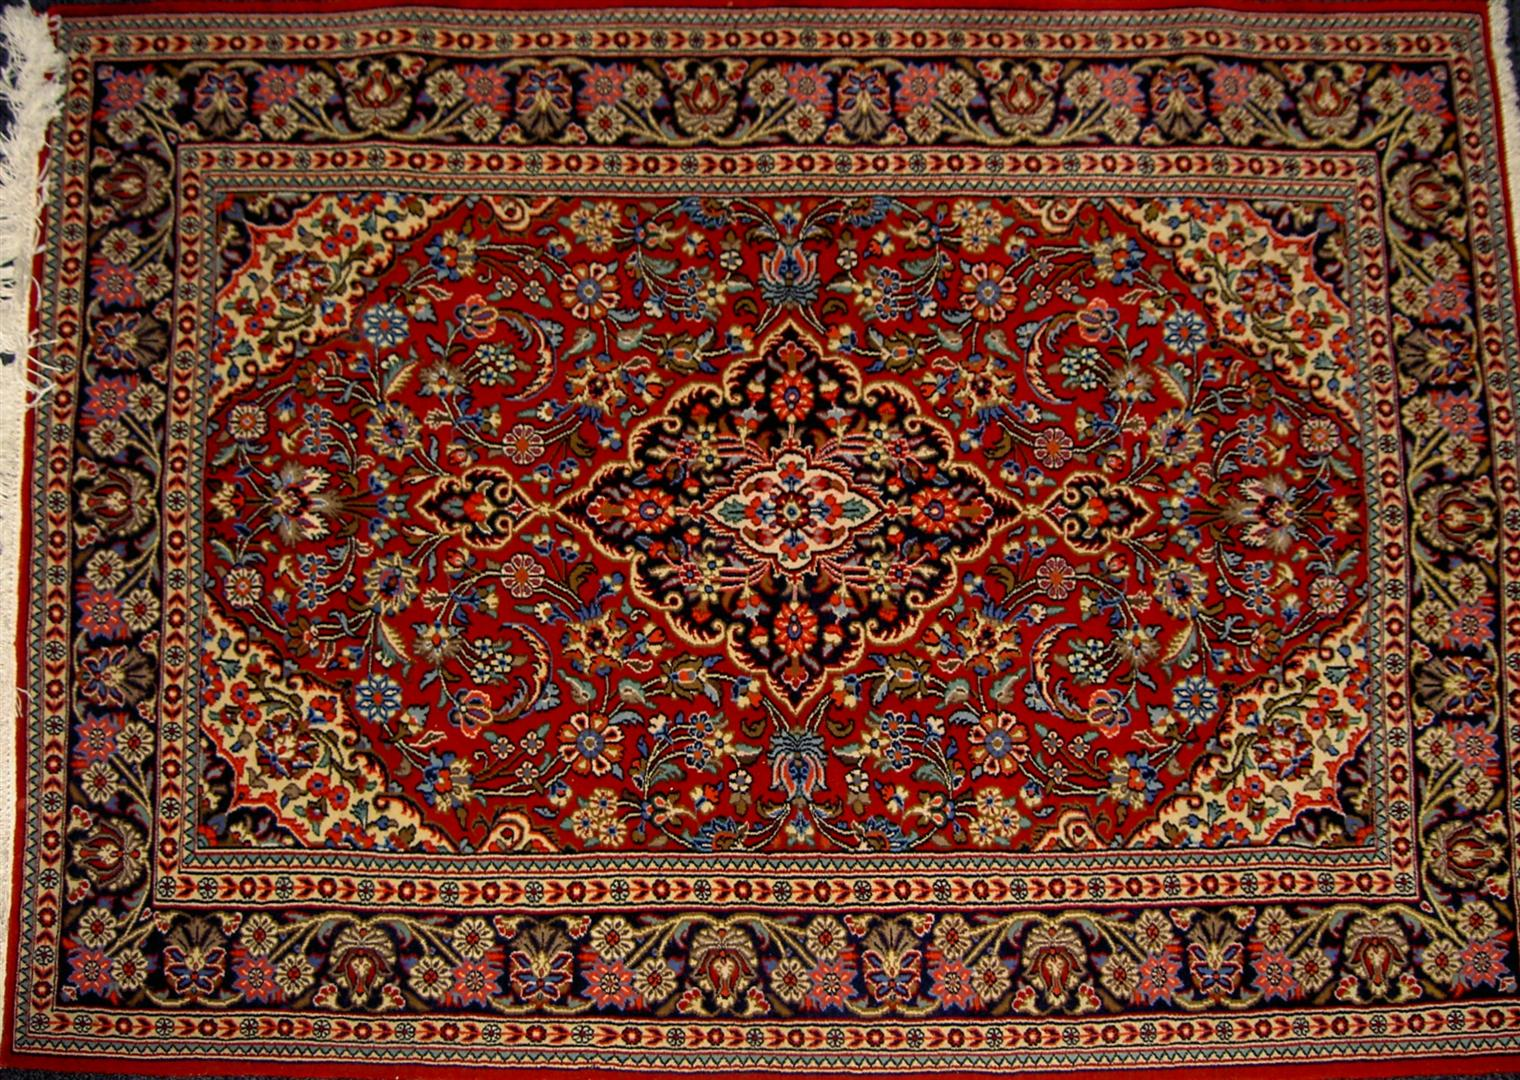 oriental rug patterns refresh your room with oriental rugs!. and, when it comes to rugs, a FZXDUQW